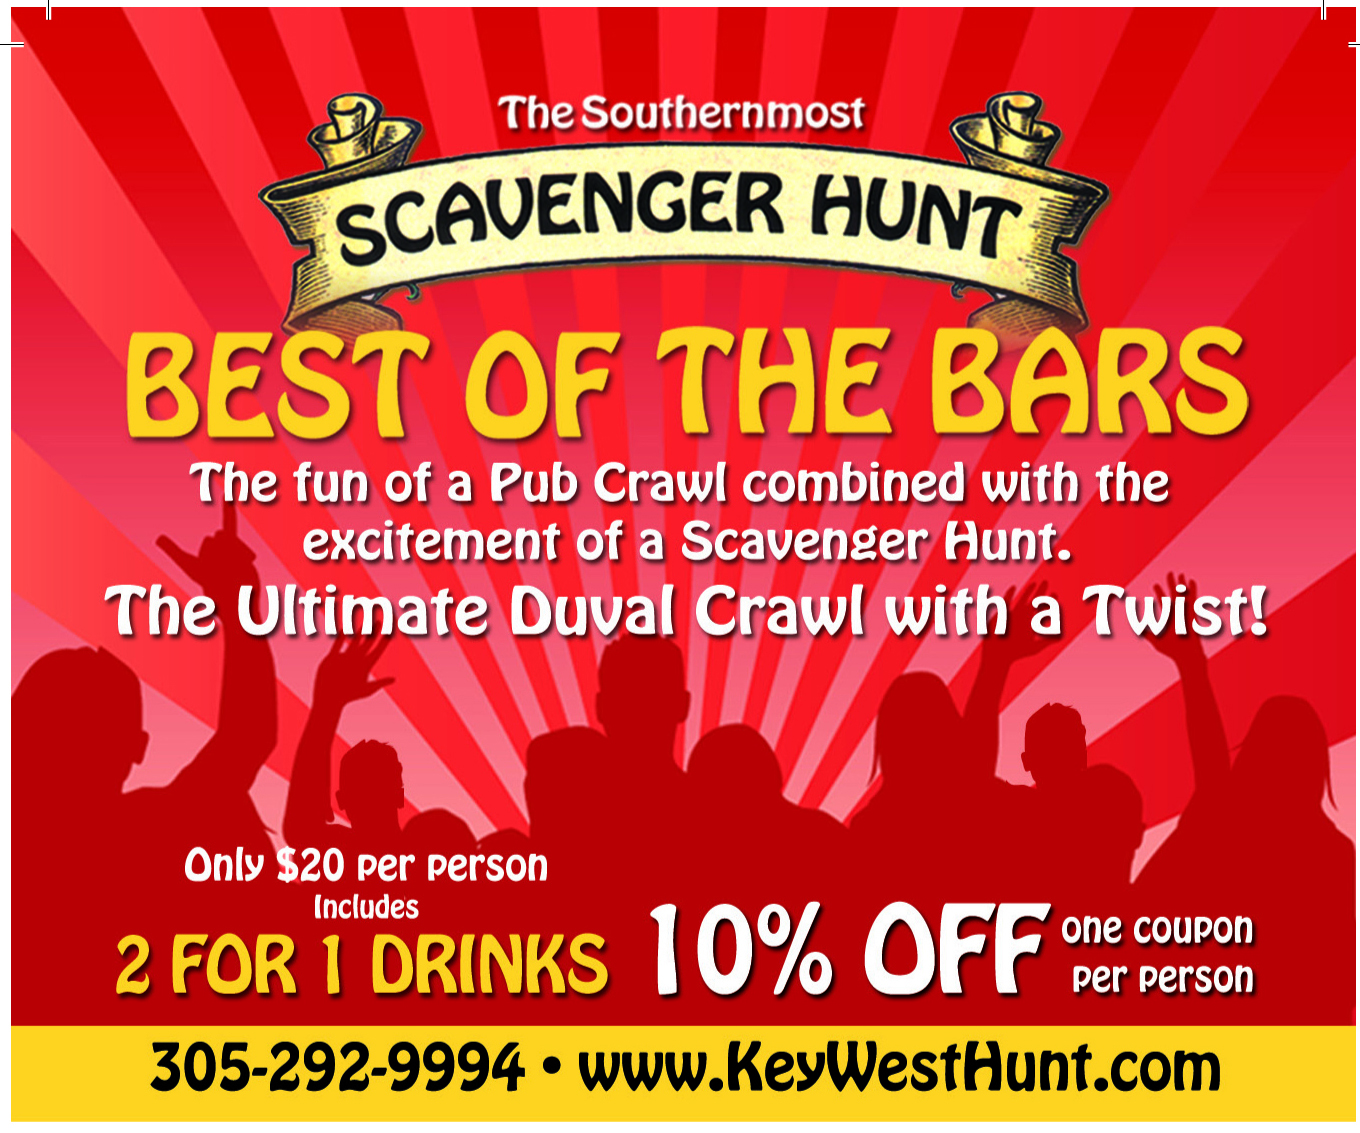 The last hunt discount coupons